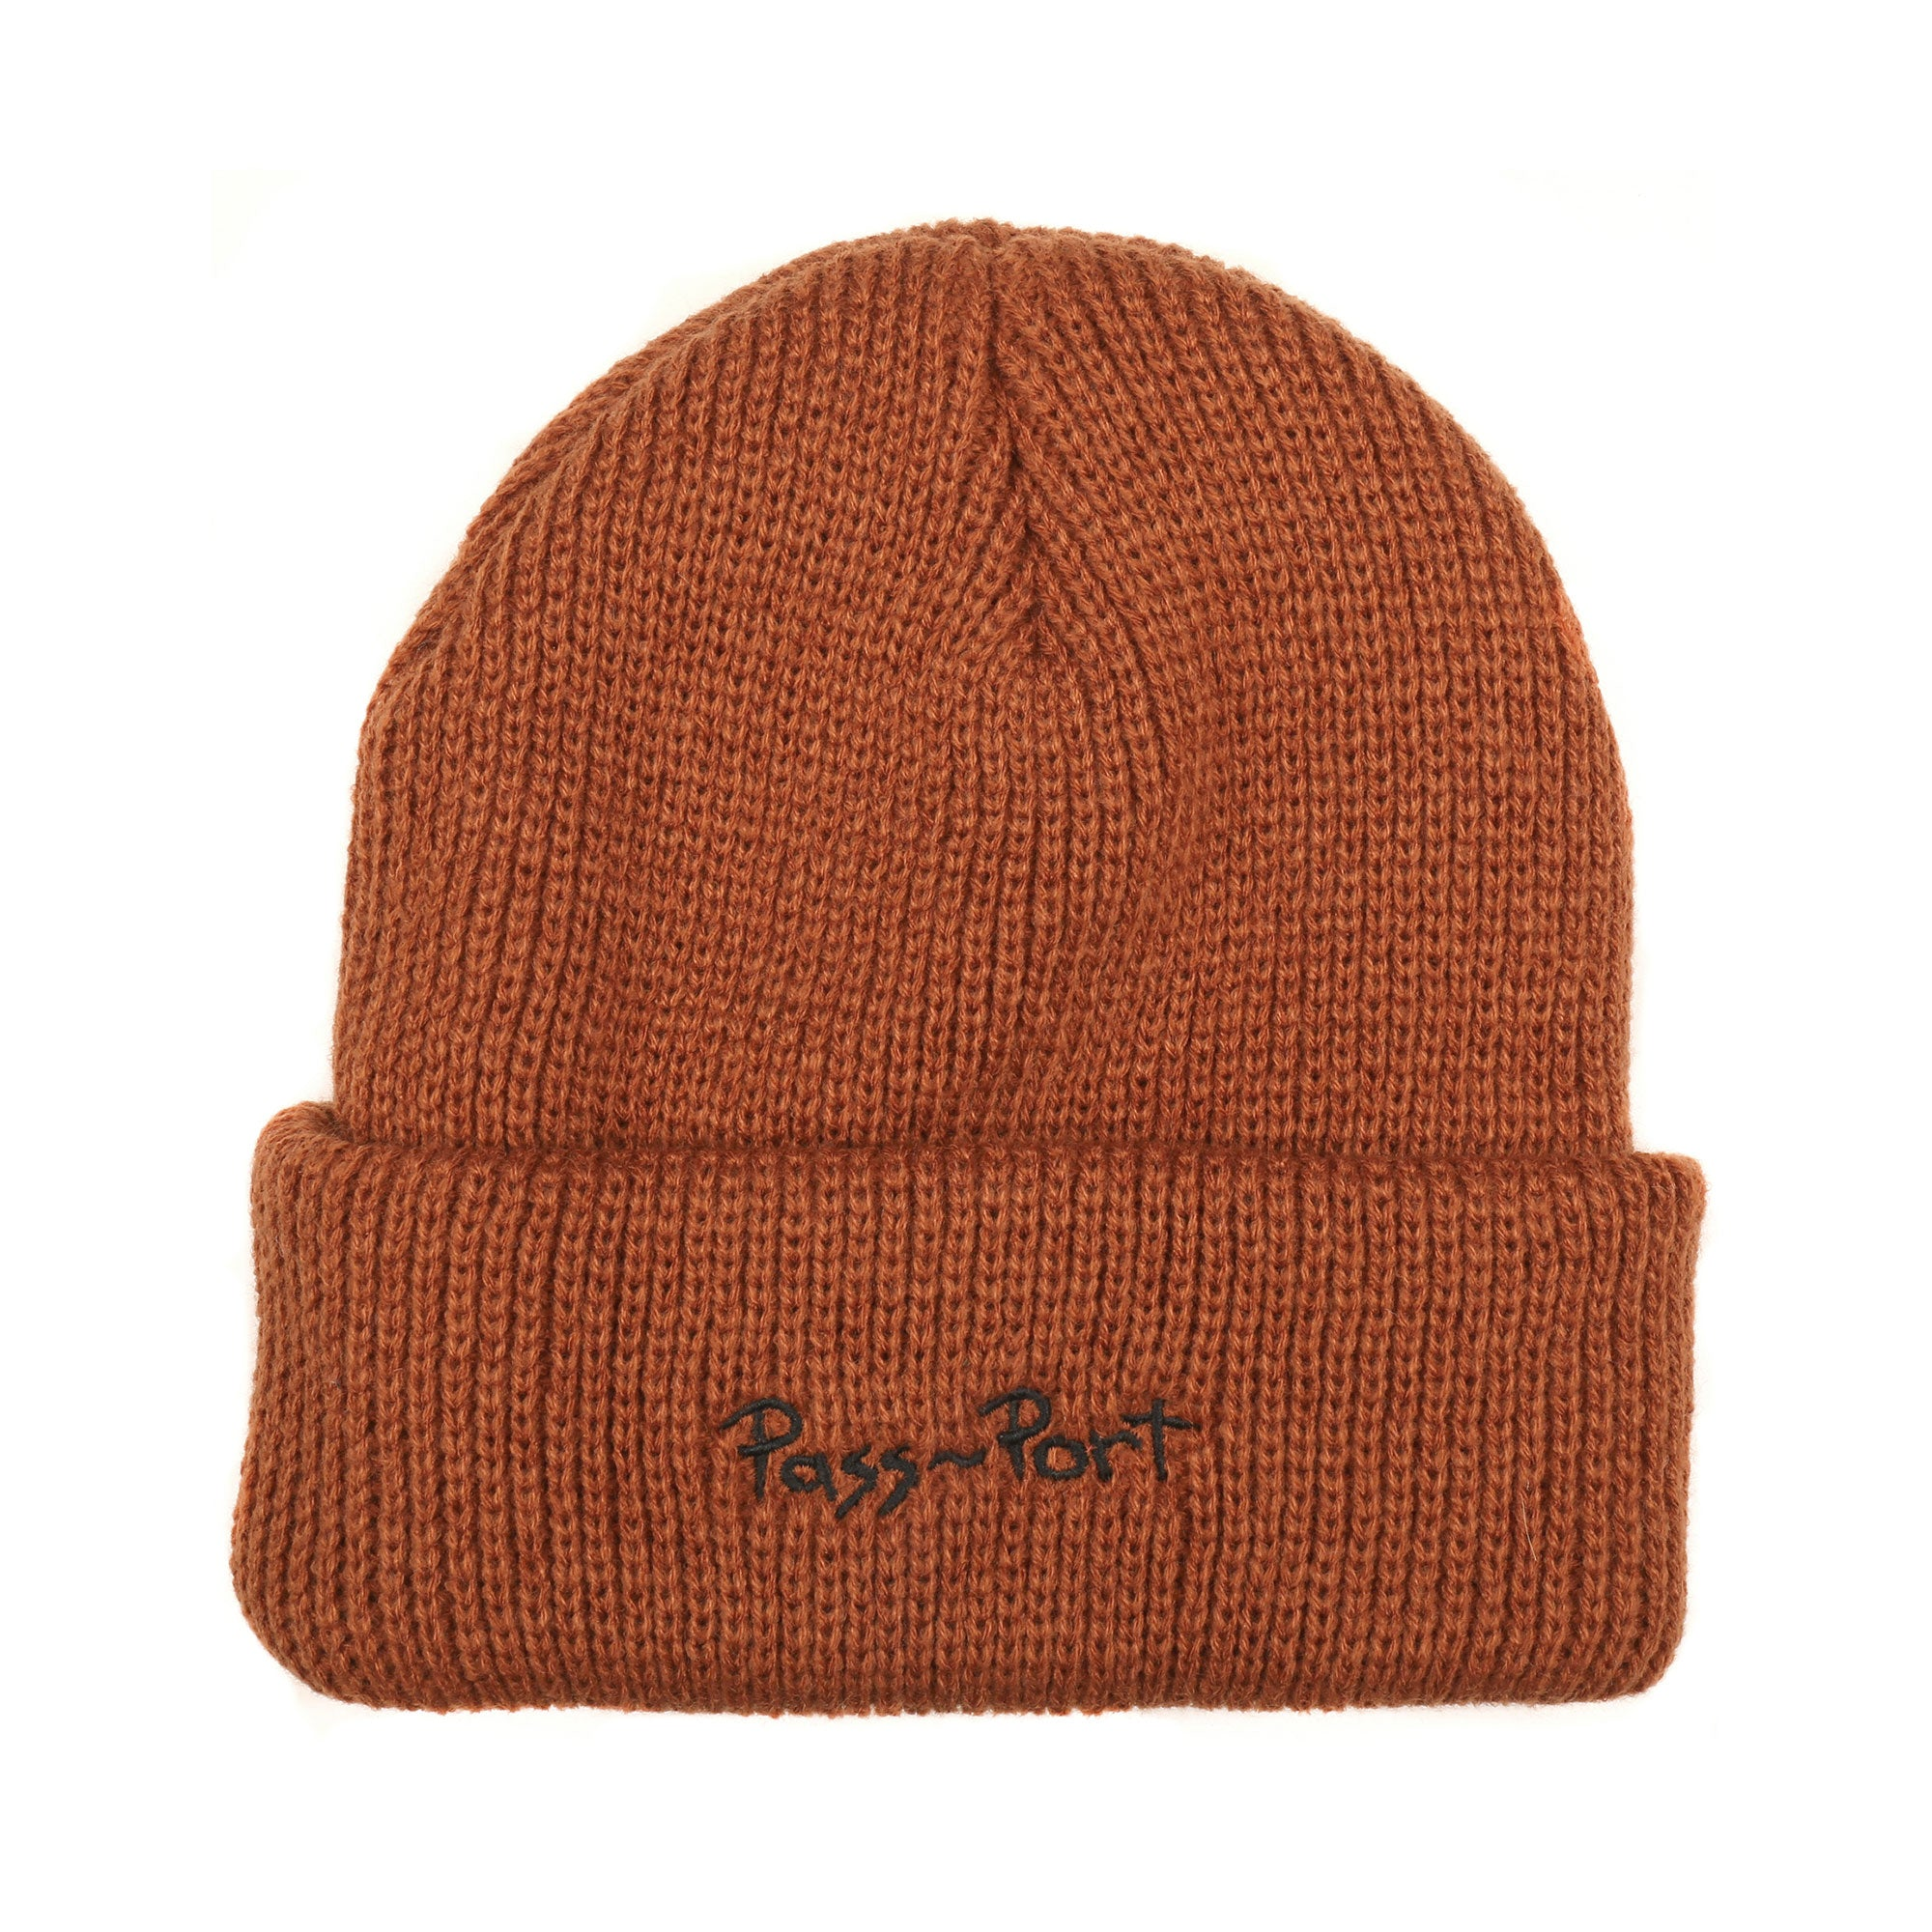 Passport Toby Zoates Copper Beanie Product Photo #2